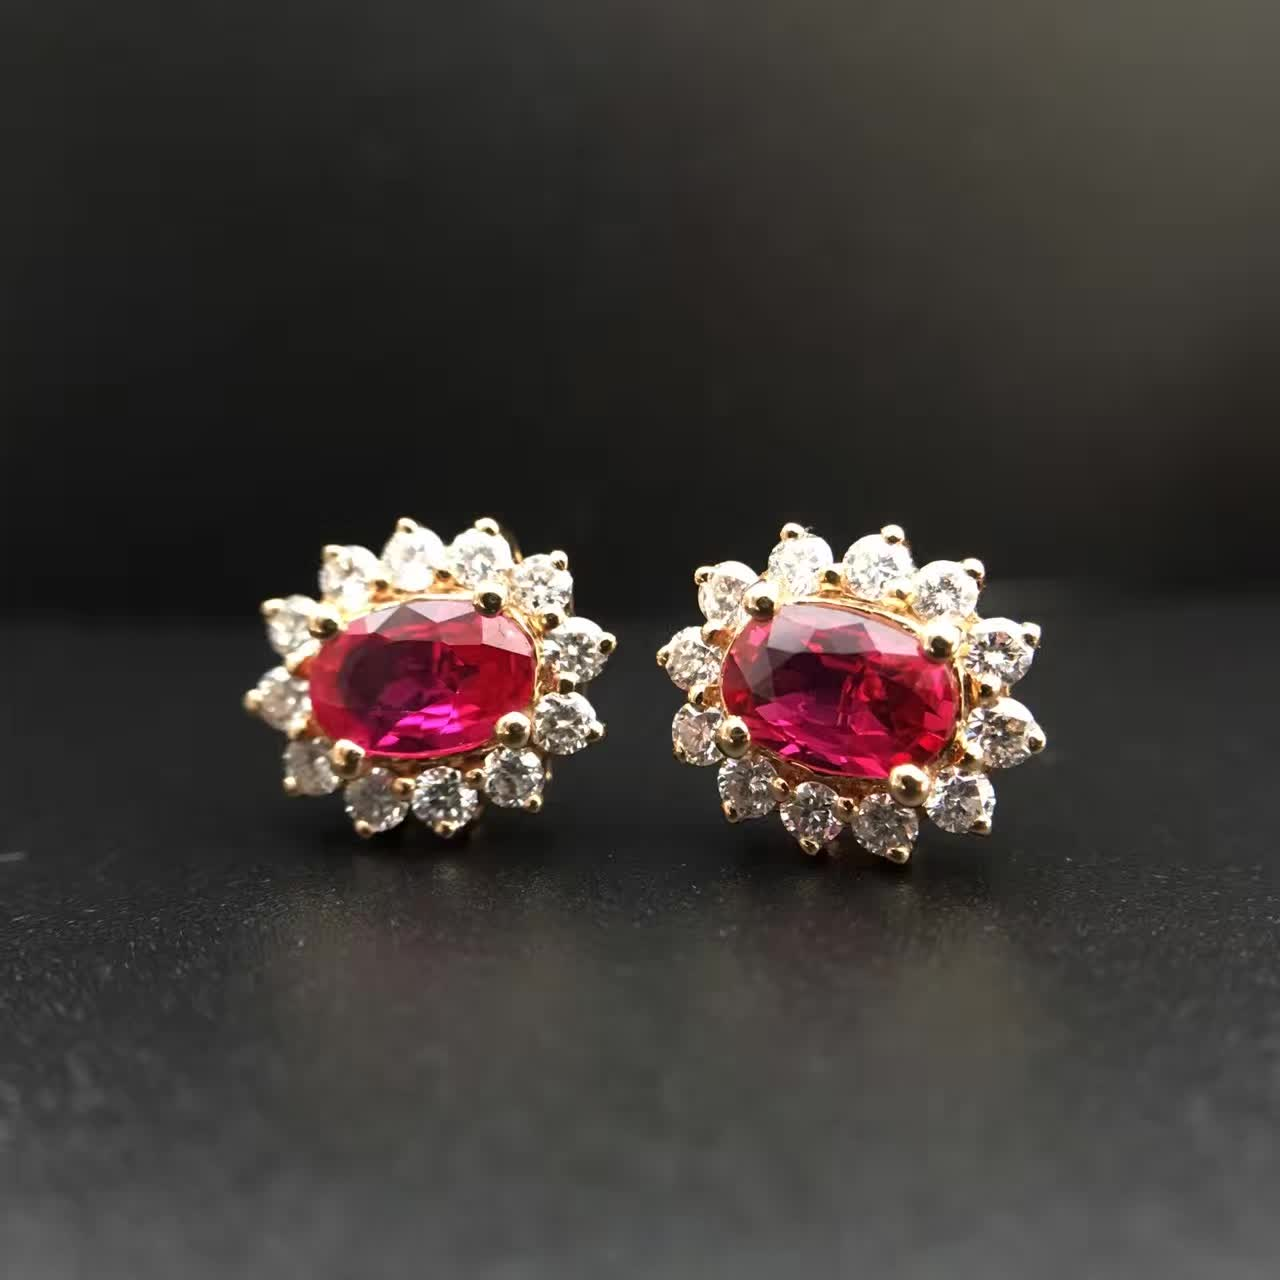 1.020ct+0.445ct 18K Gold Natural Ruby Stud Earrings for Women Diamond Encrusted Free Shipping